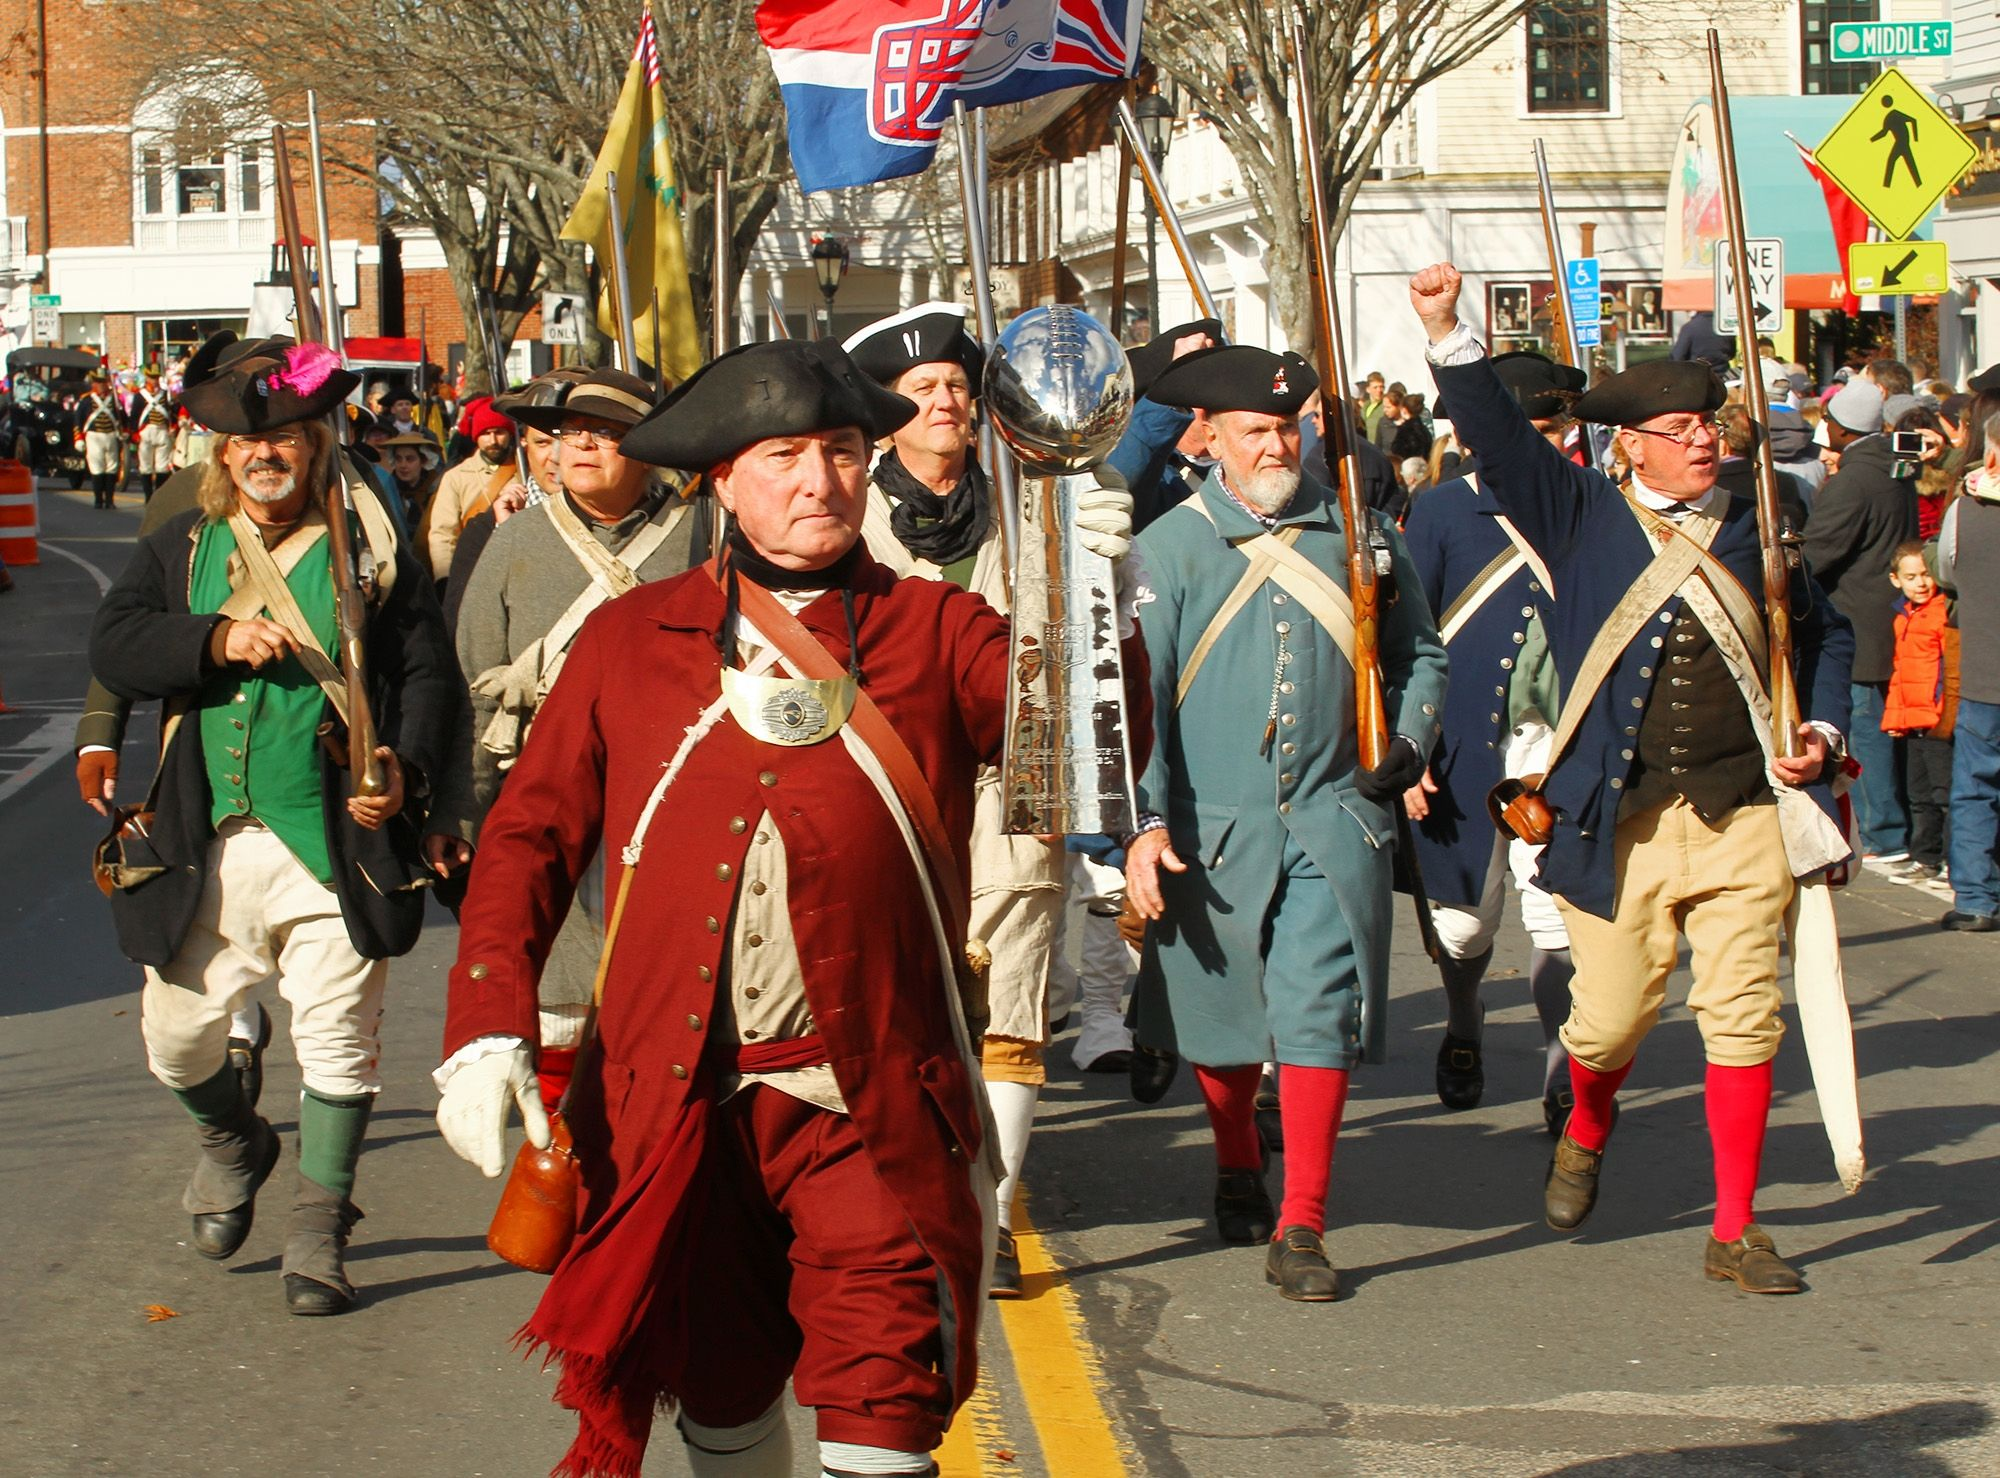 Geoffrey Campbell Of The New England Patriots End Zone Militia Marches With A Replica Vince Lombardi Thanksgiving Parade Lombardi Trophy New England Patriots